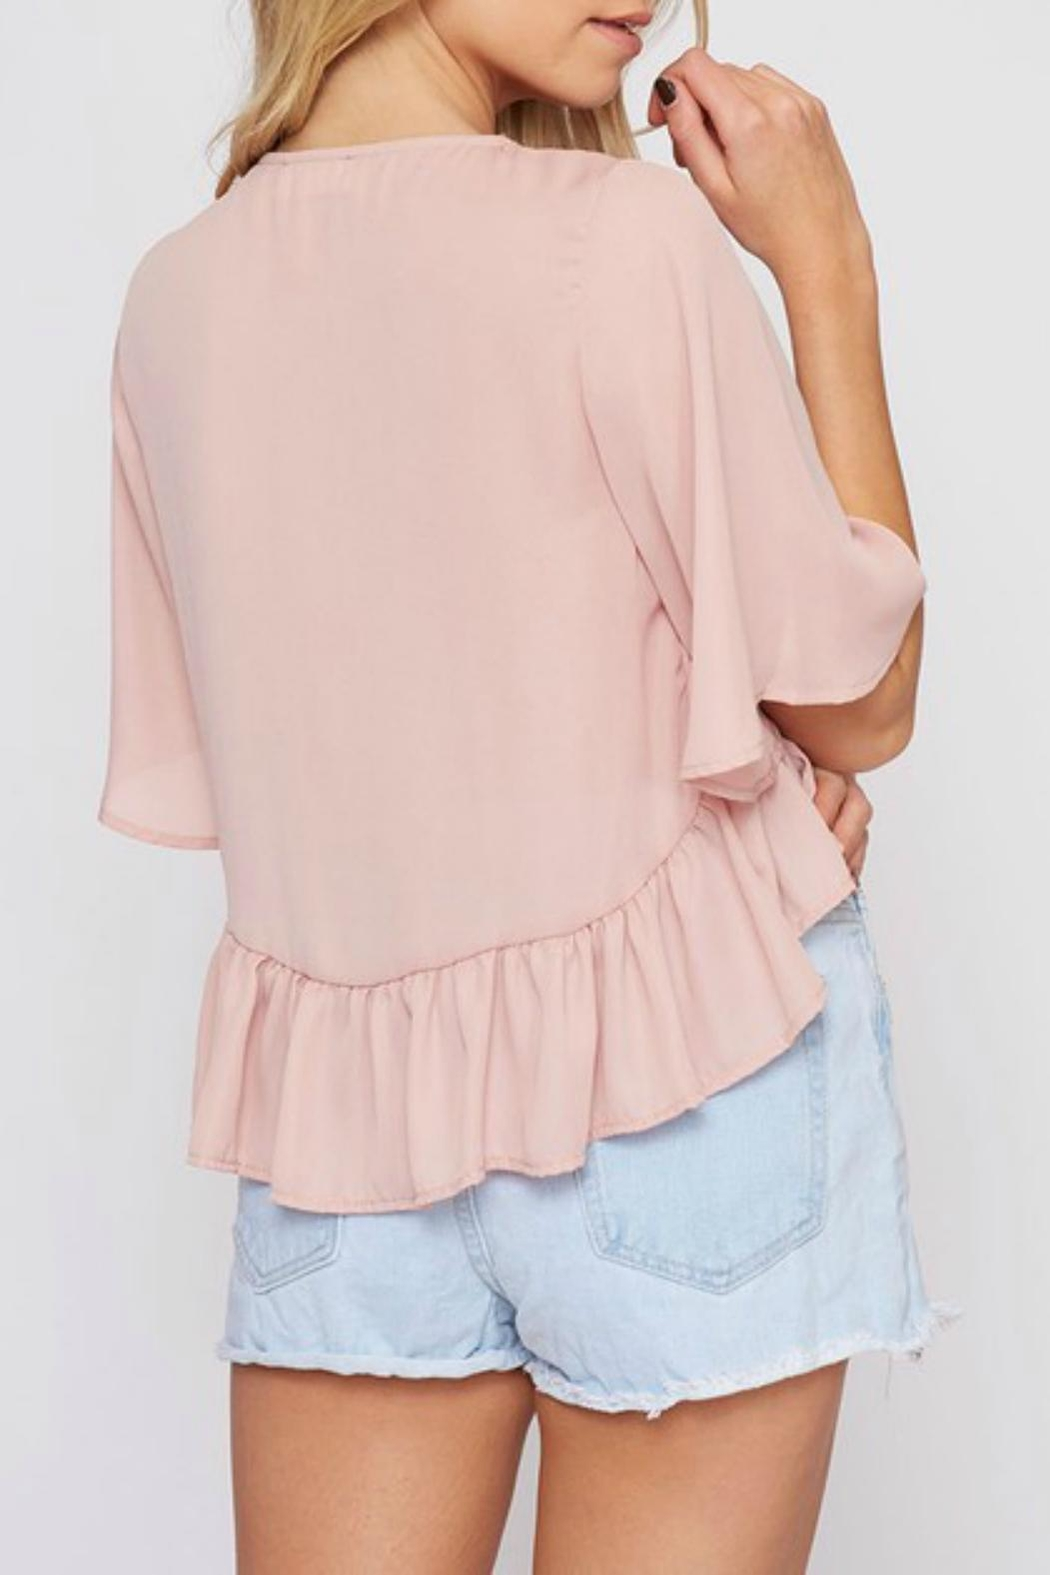 Pretty Little Things Flyaway Tie Top - Front Full Image